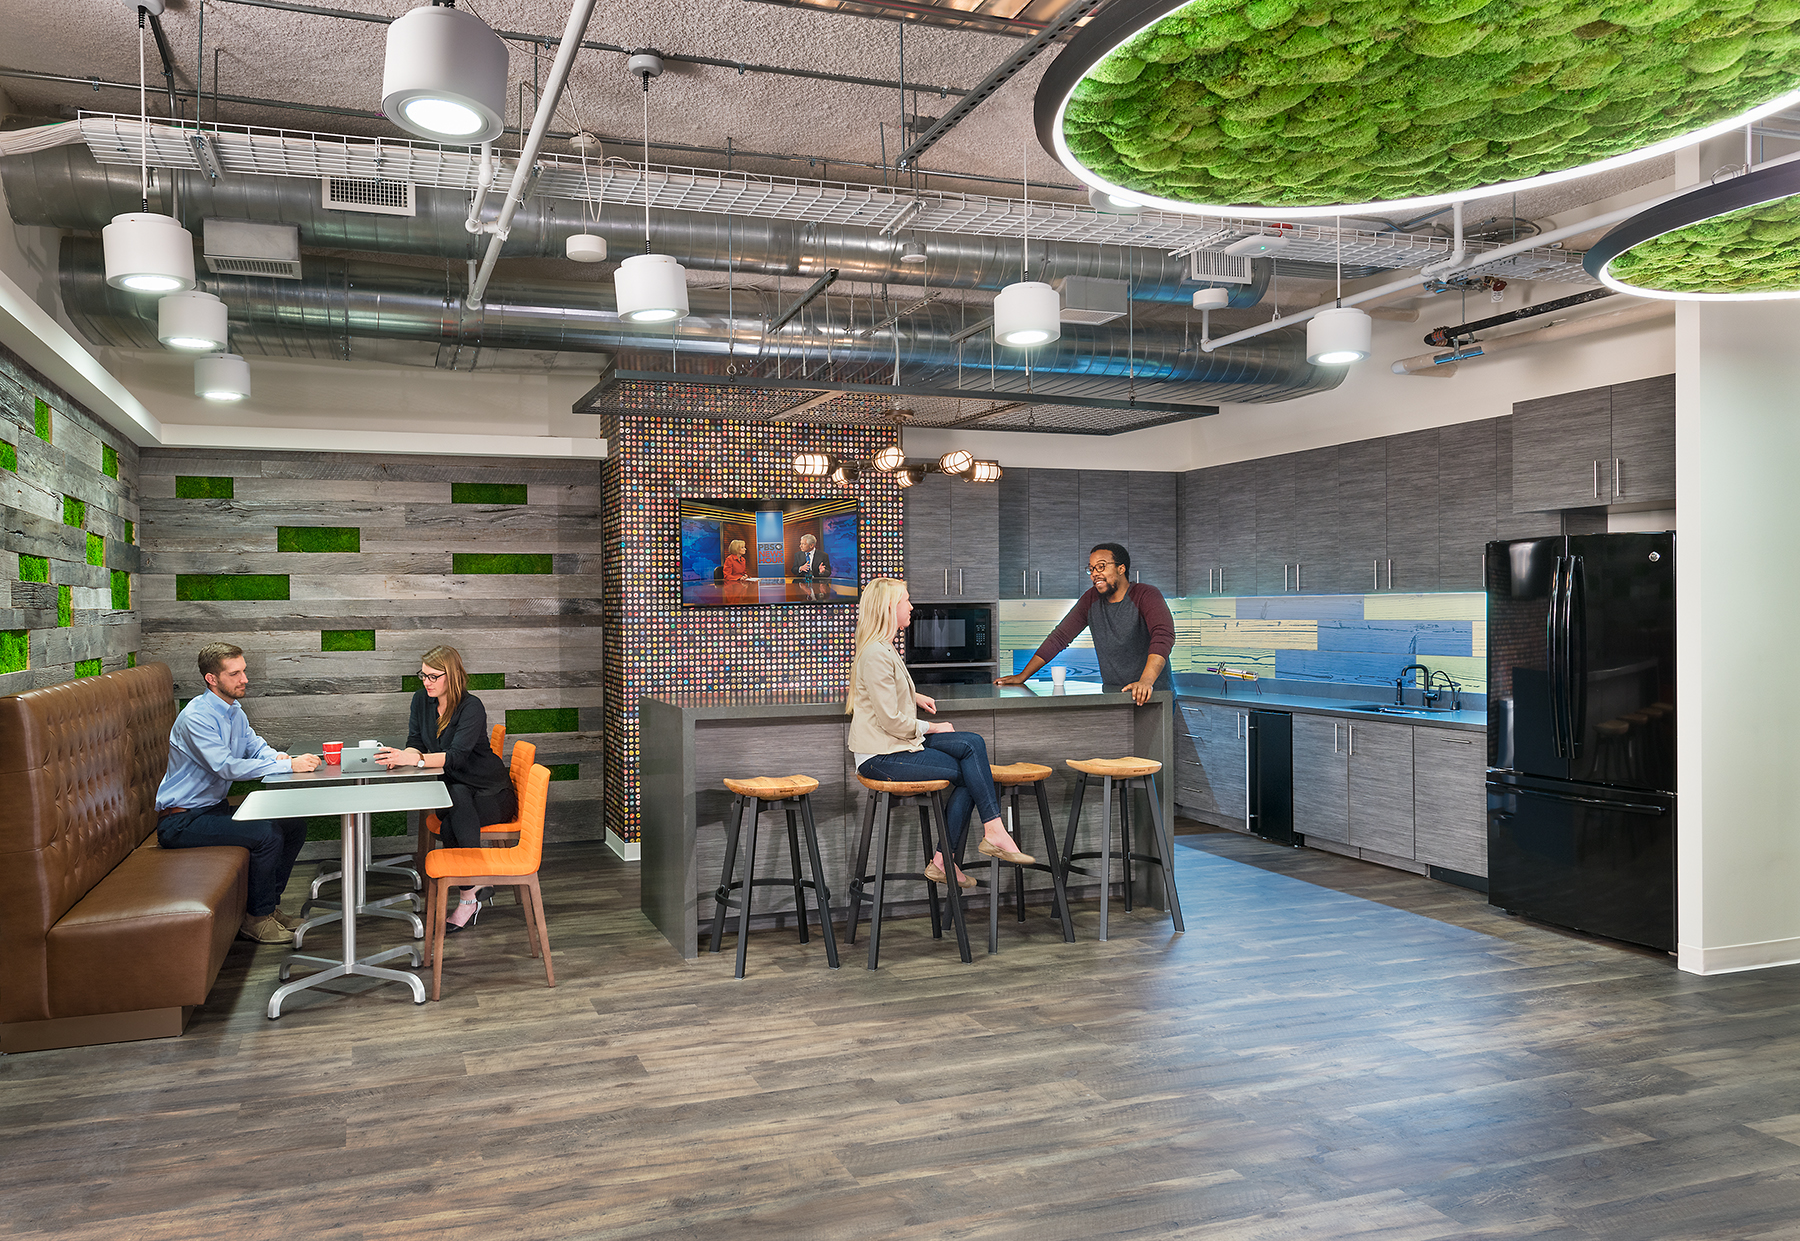 Washington, DC - Scope of ServicesProject ManagementProject Details420,000 sfIn-place renovationDesign FeaturesInterconnecting stairs and corridors, open floor plan, amenities including a cafeteria, fitness center, auditorium, and atrium.